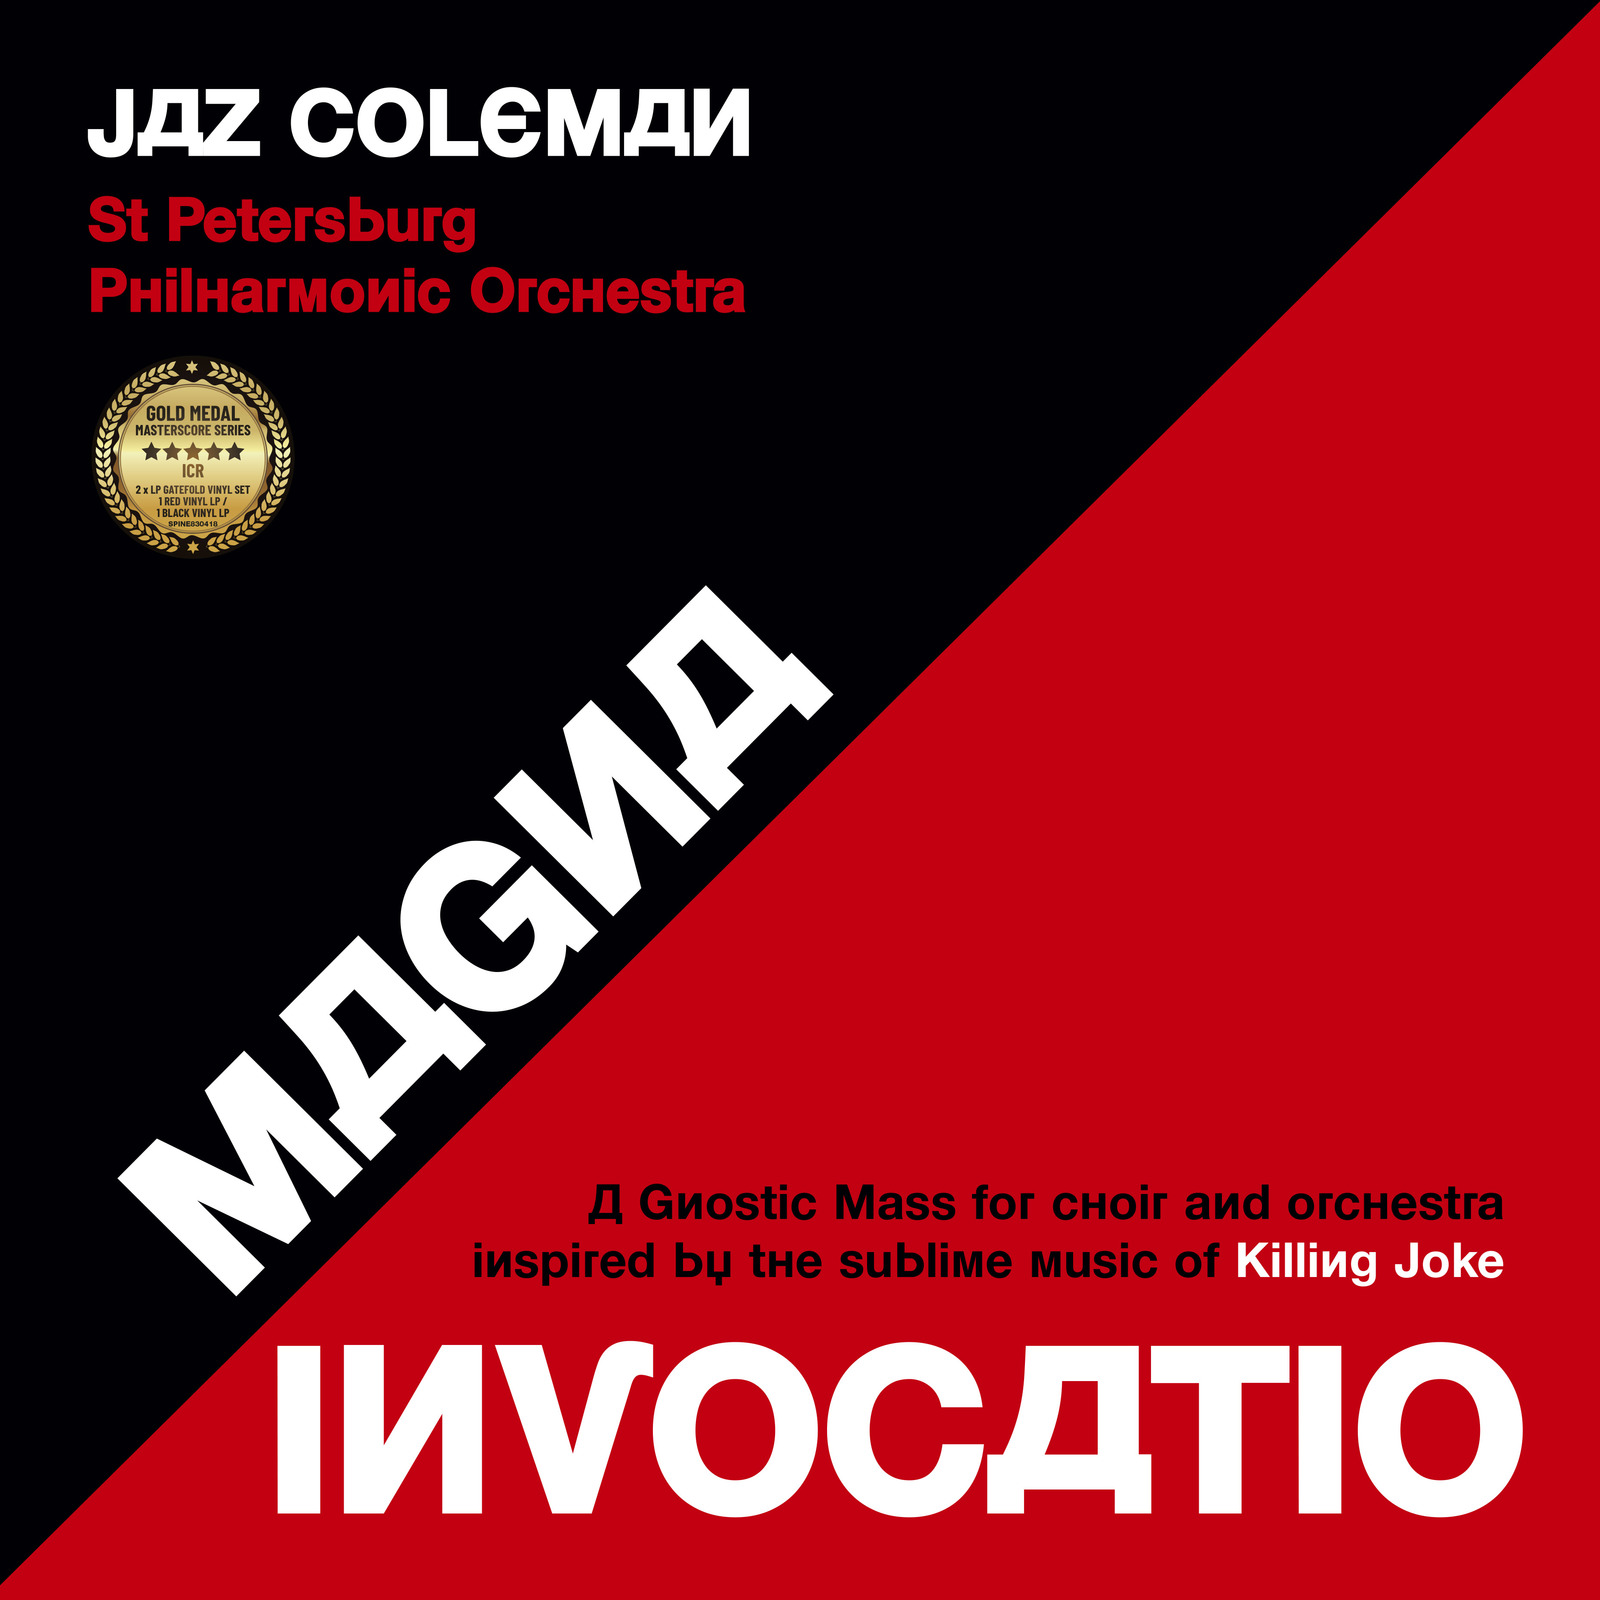 Magna Invocatio - A Gnostic Mass For Choir And Orchestra Inspired By The Sublime Music Of Killing Joke by Jaz Coleman image